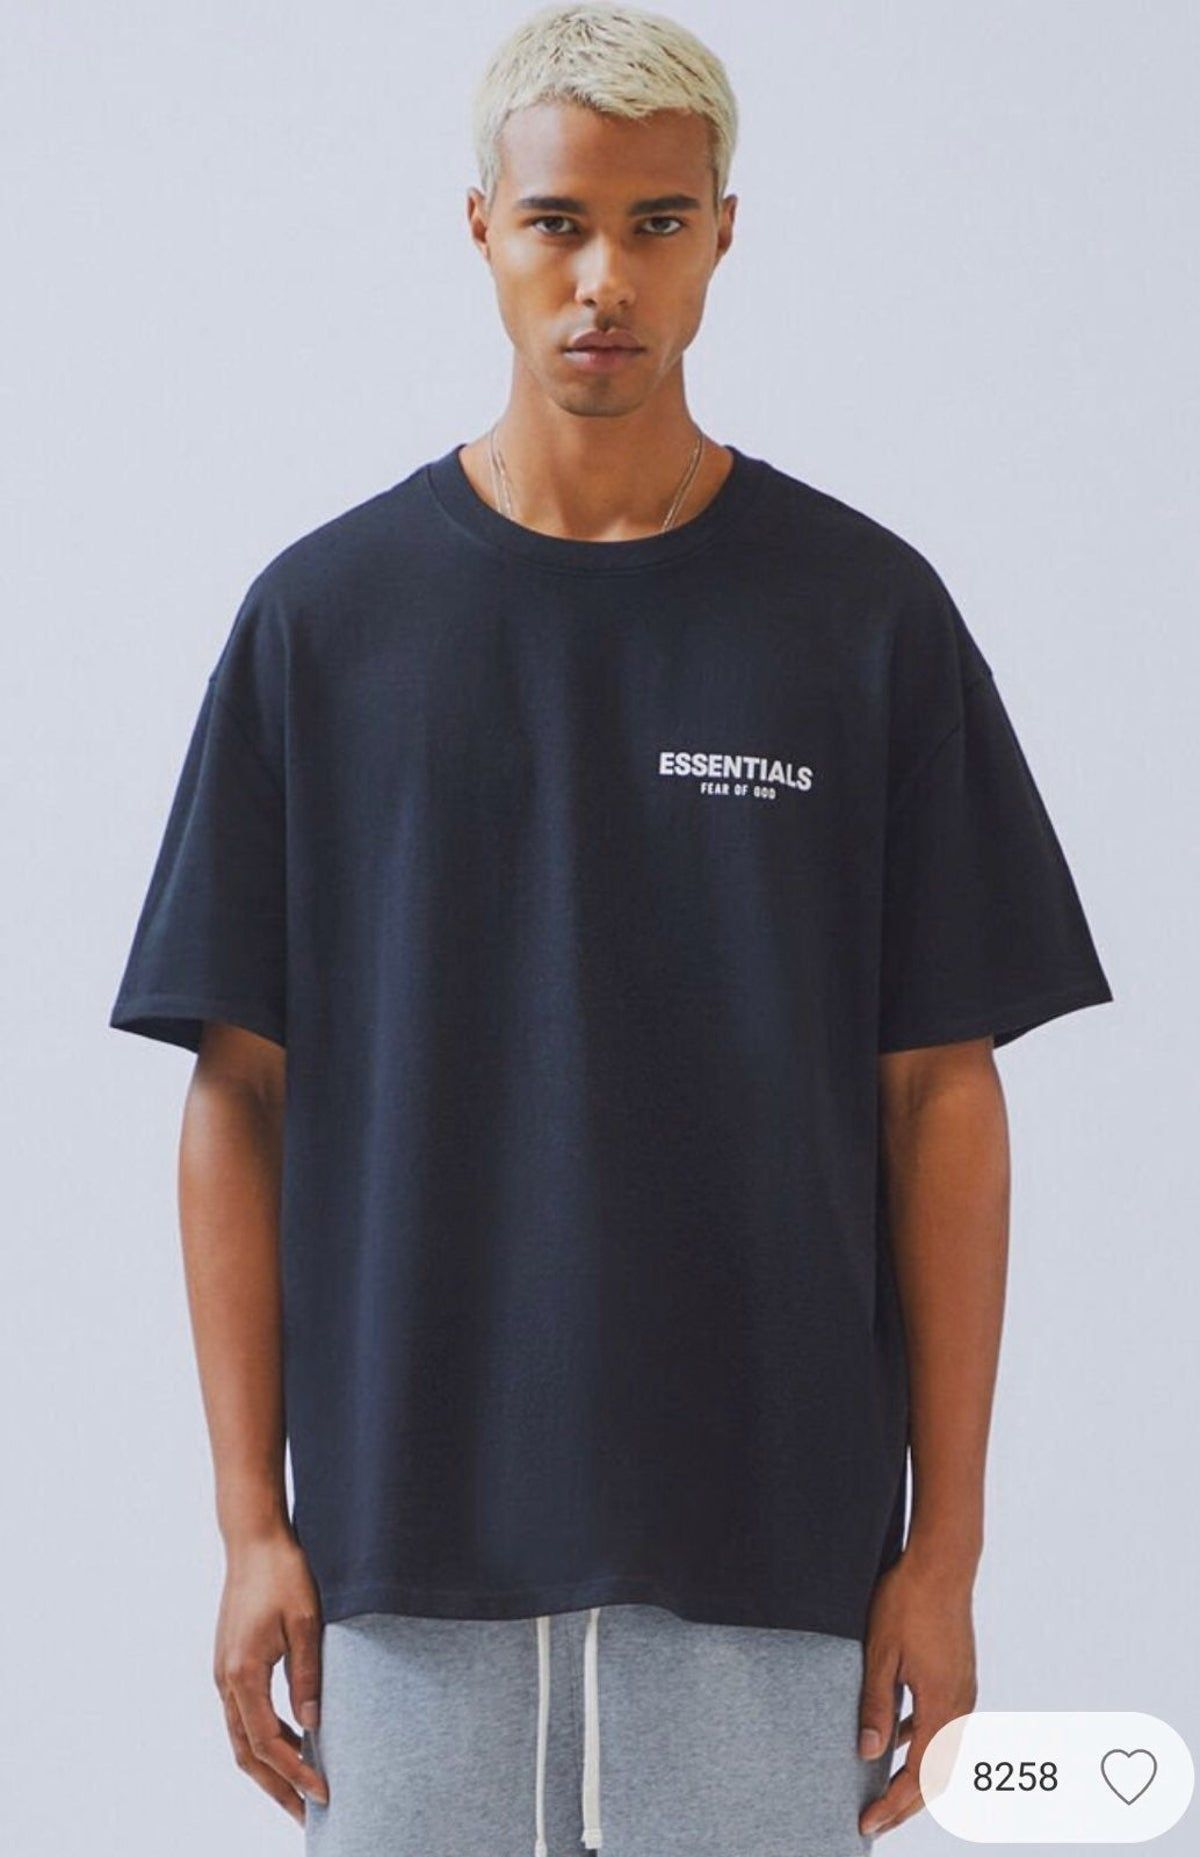 Fear Of God T Shirt In 2020 Kanye West Outfits Gods Shirt Tshirt Outfits